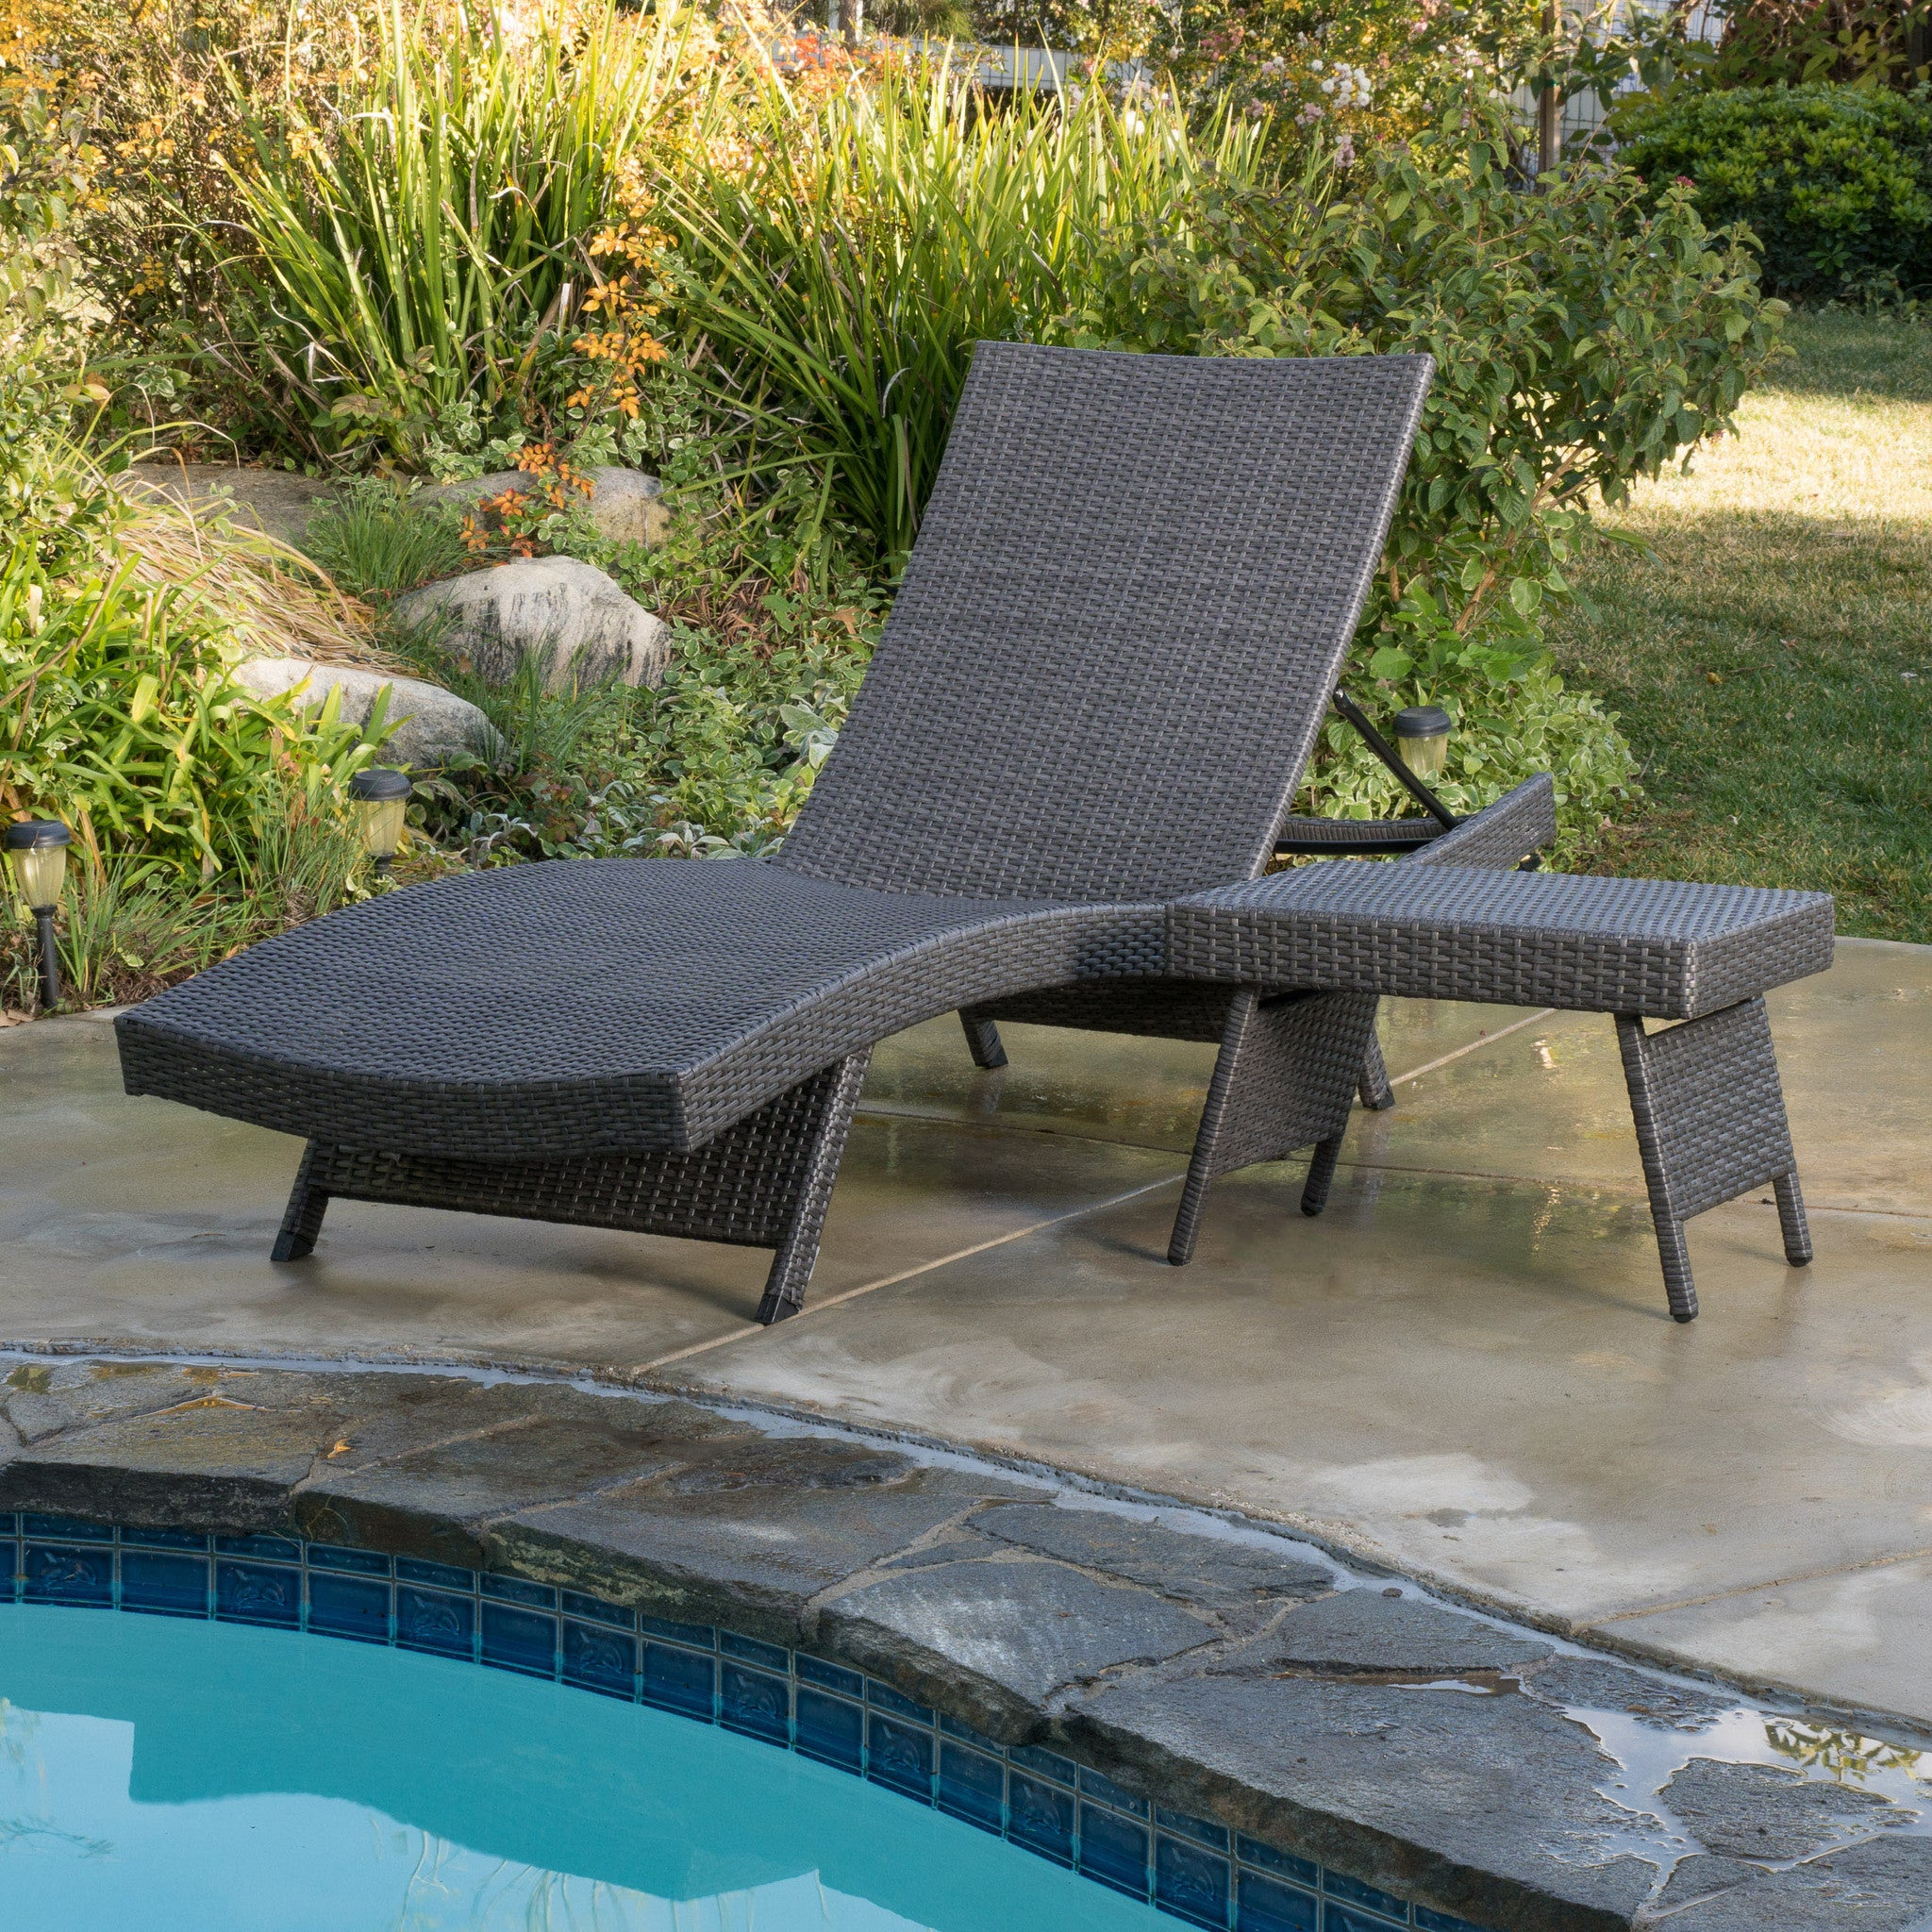 Outdoor pool chaise lounge chair pe wicker patio furniture adjustable - Olivia Outdoor Grey Wicker Adjustable Chaise Lounge And Table Set